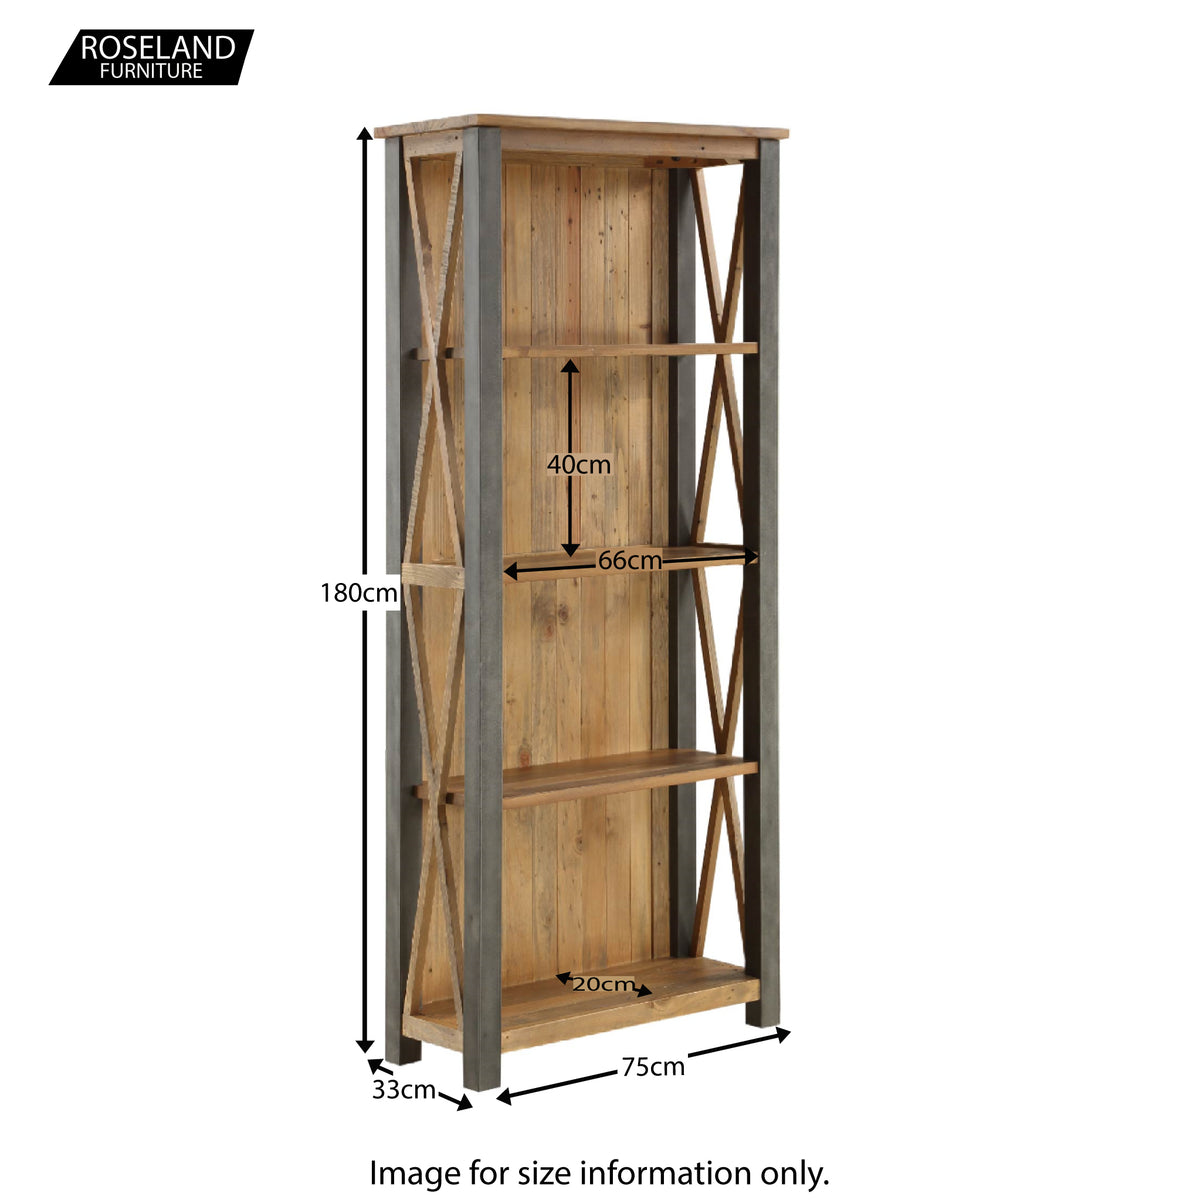 Dimensions for Urban Elegance Reclaimed Wood & Steel Frame Large Bookcase 180 x 75 x 33 cm